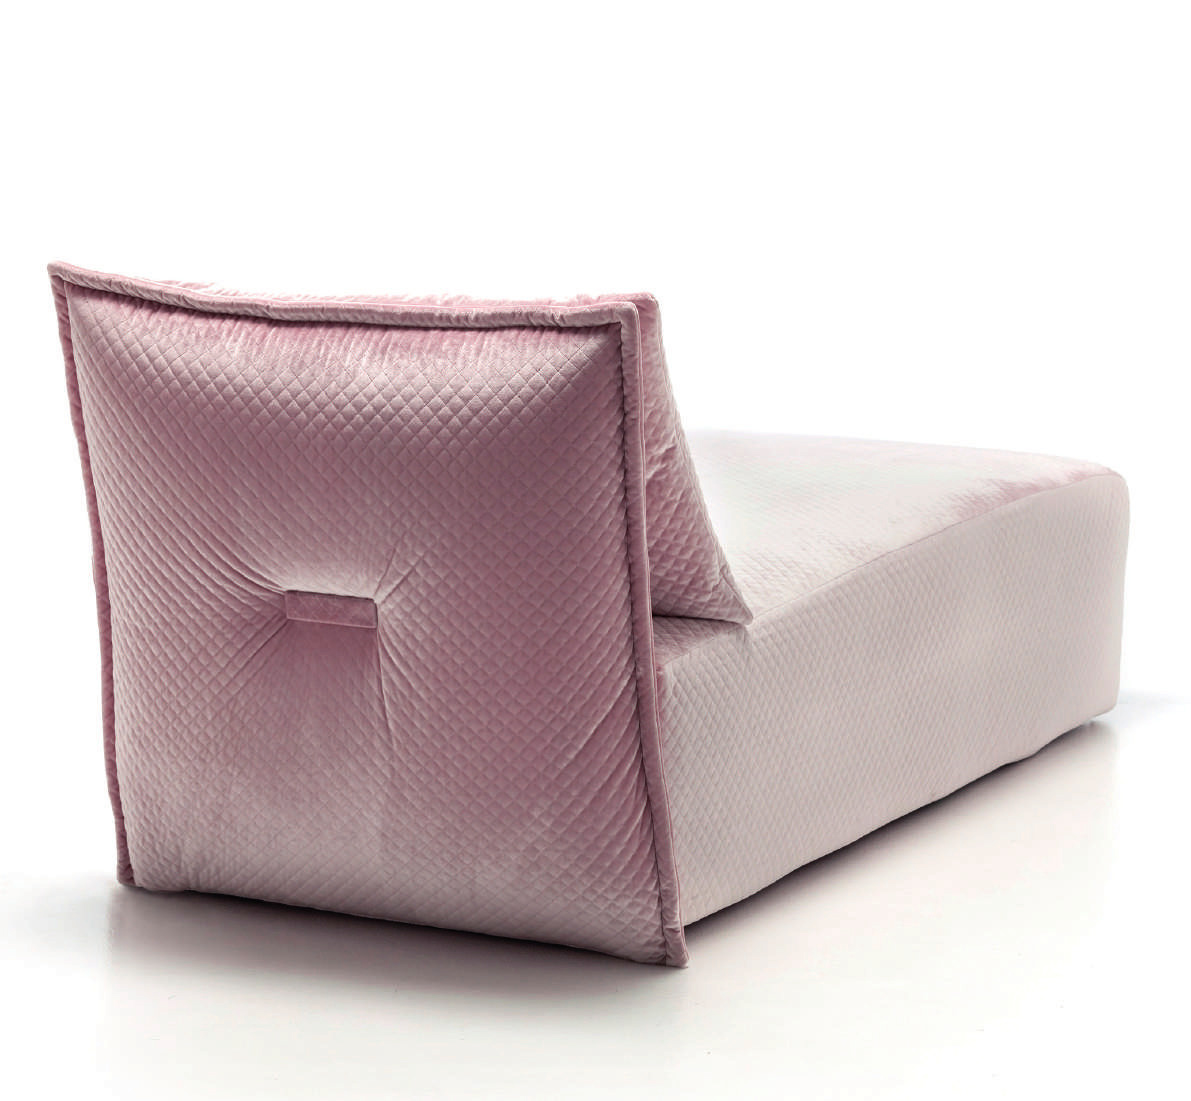 purple chaise lounge chair covers for office luxury italian designer